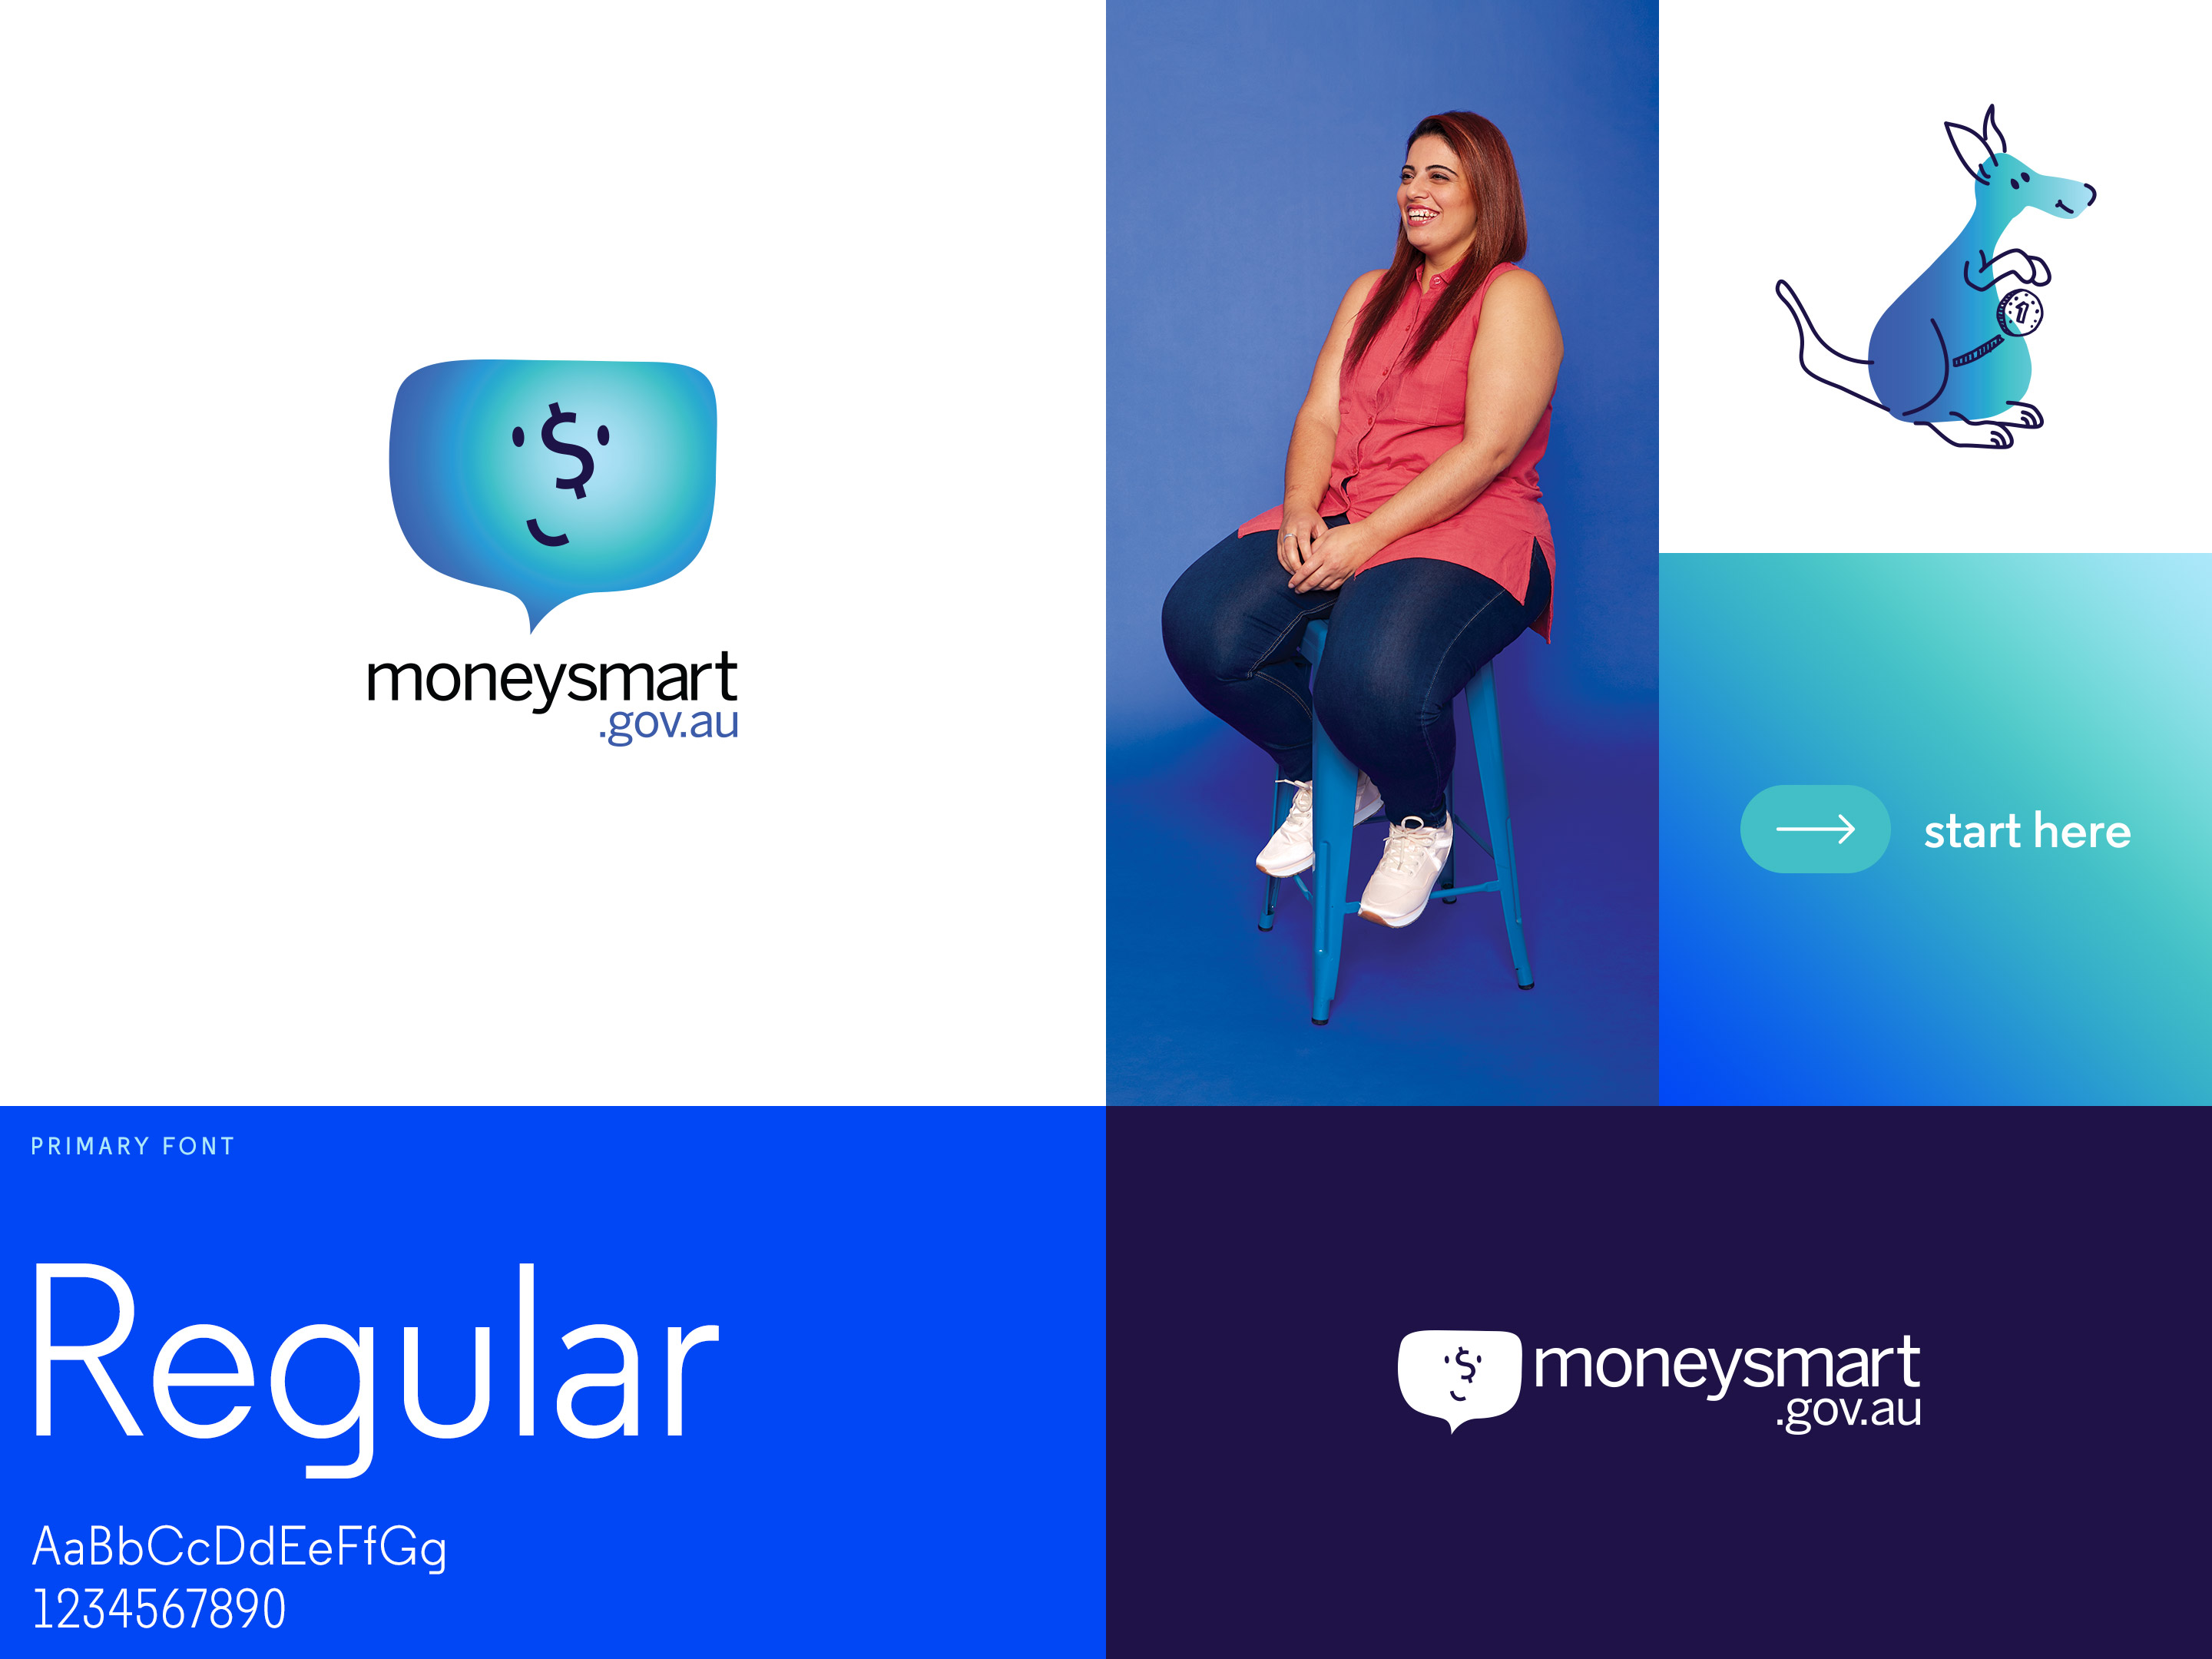 Moneysmart. Branding overview. Logos, brand photography, illustrations, typography and brand device.